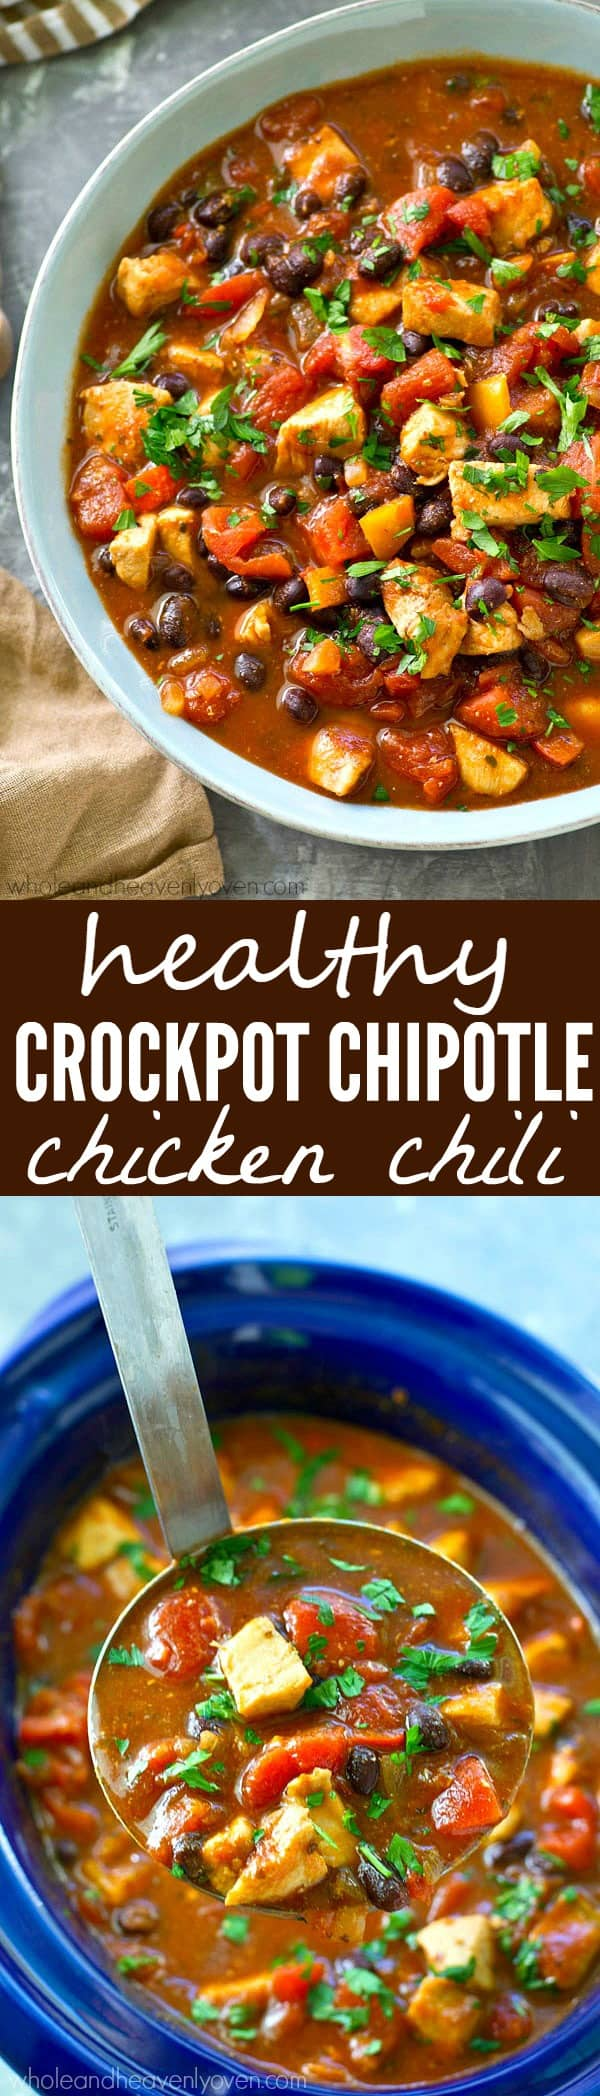 Fill up the crockpot for your next football party with this kickin' chipotle chicken chili! Everything gets dumped in the crockpot for easy prep and you won't BELIEVE all the amazing cozy flavors packed inside.